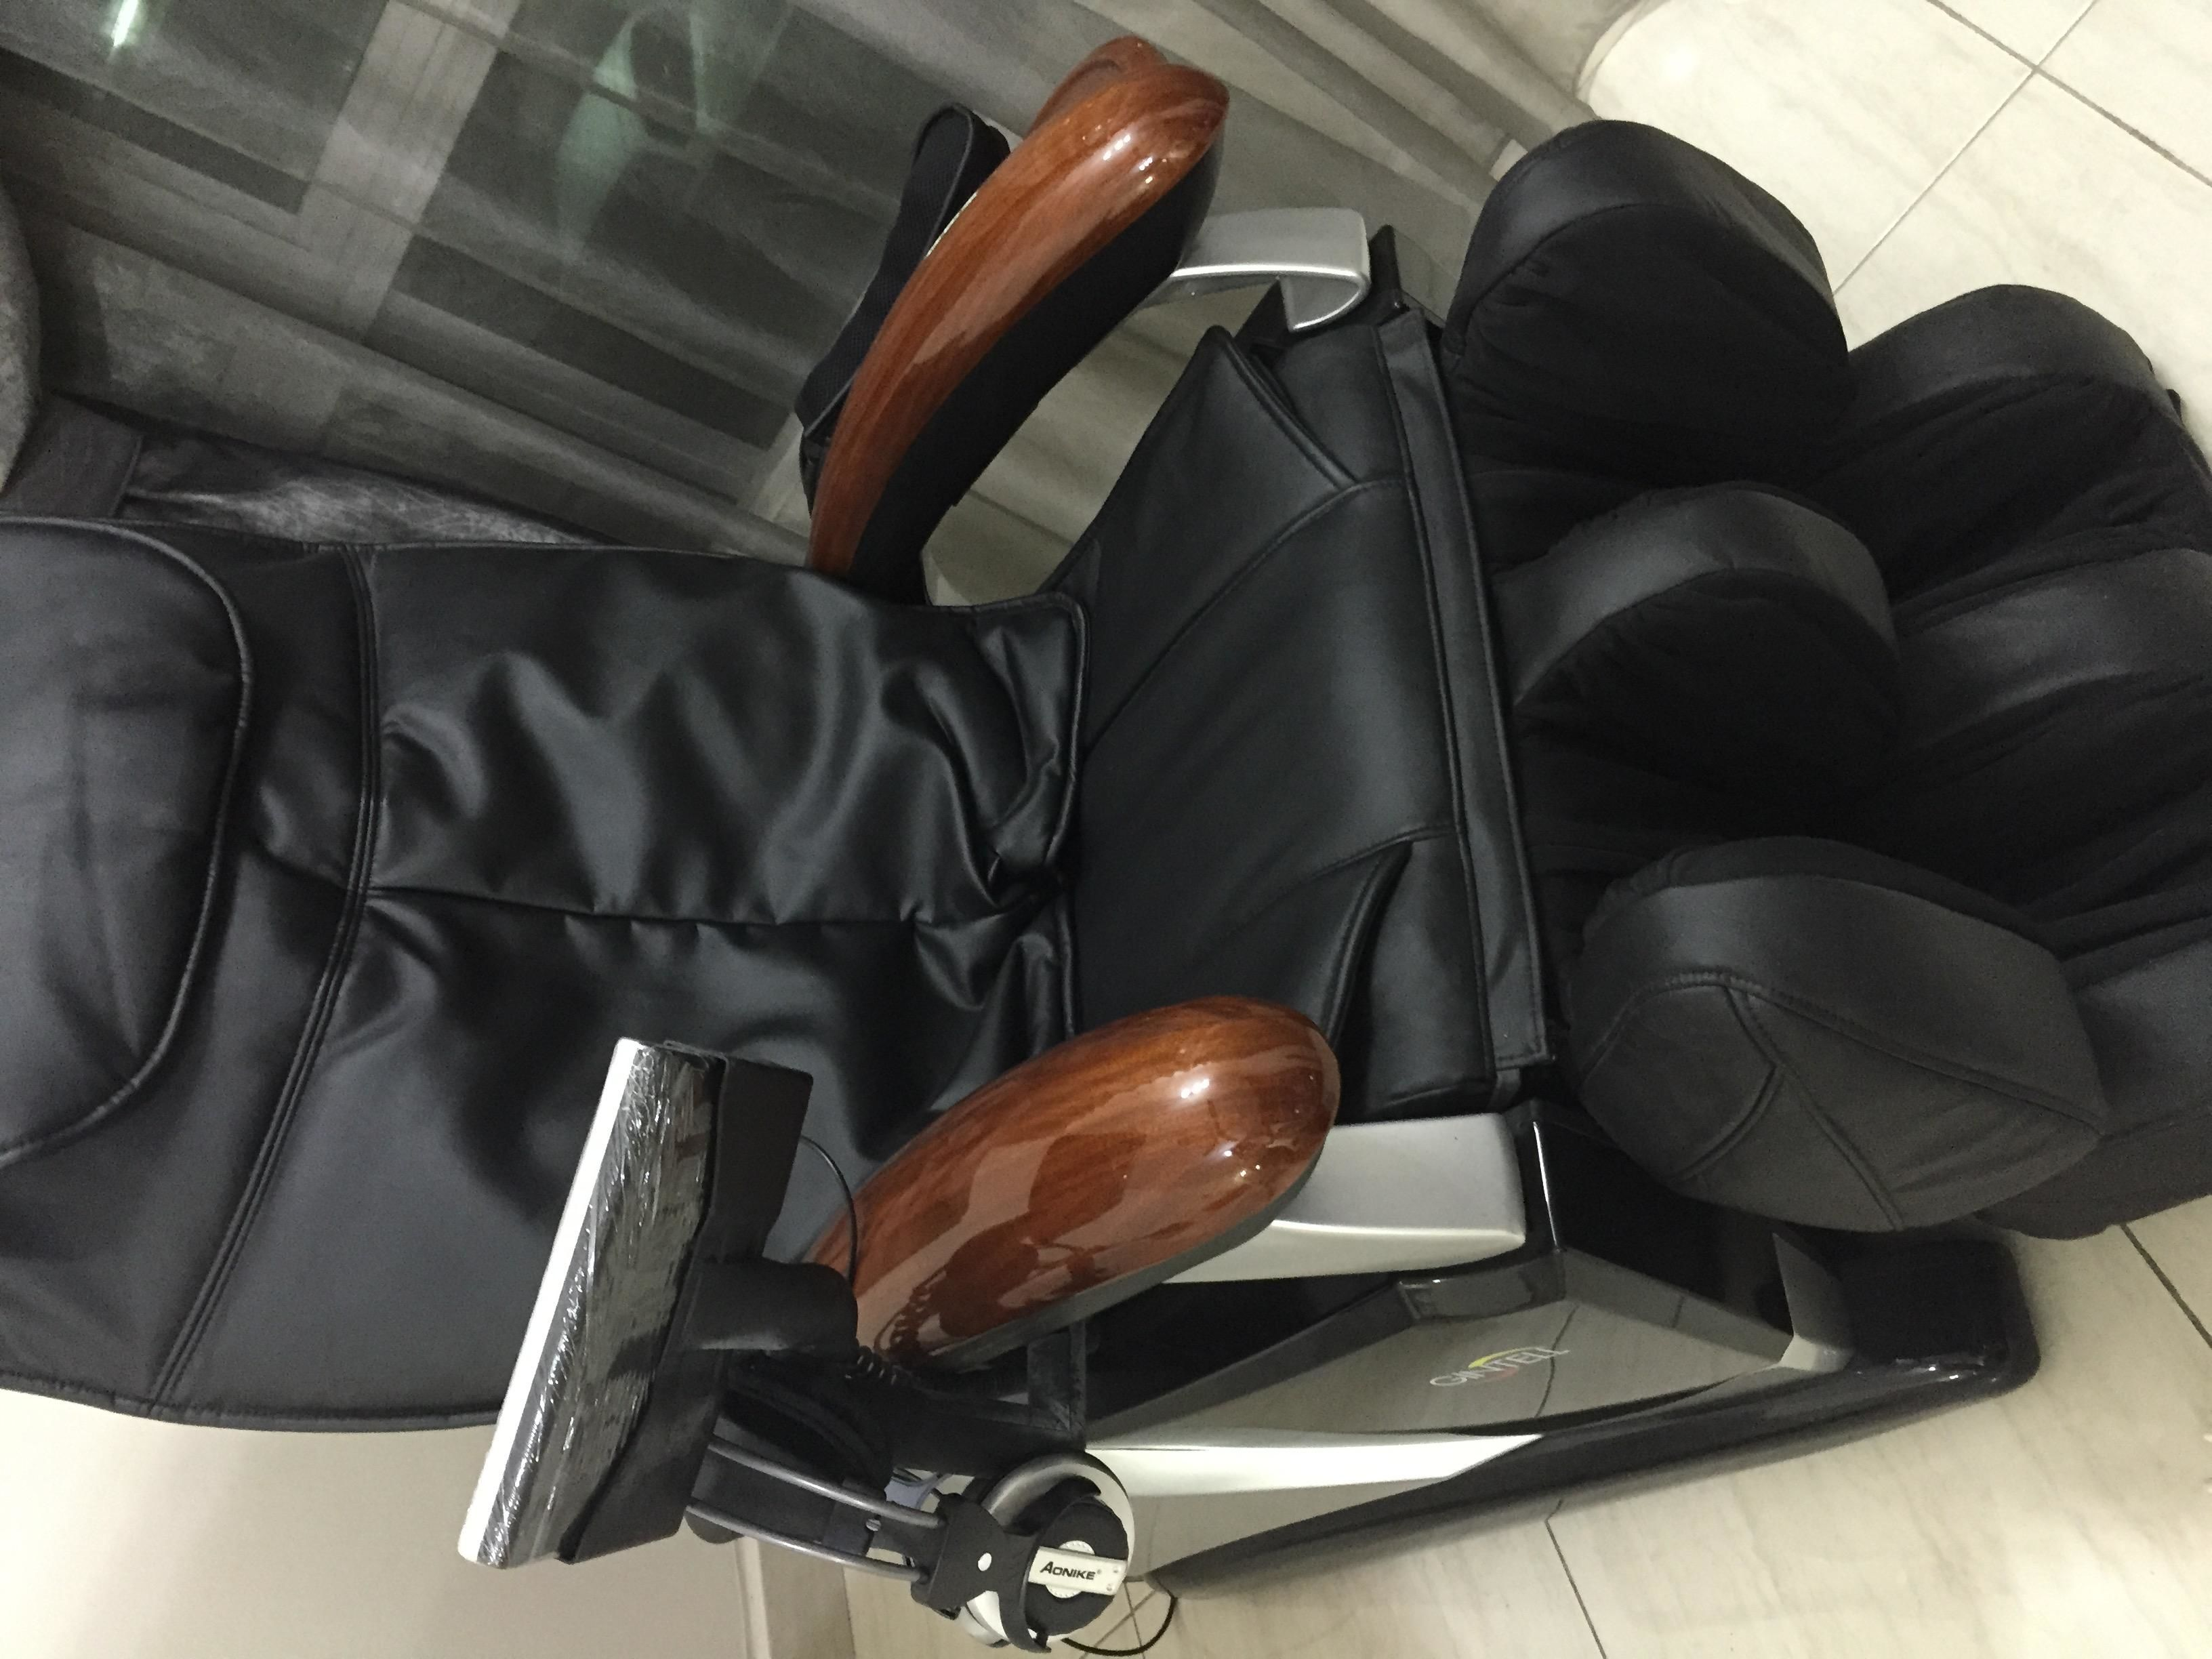 Gintell massage chair and or i So melody shake to shape